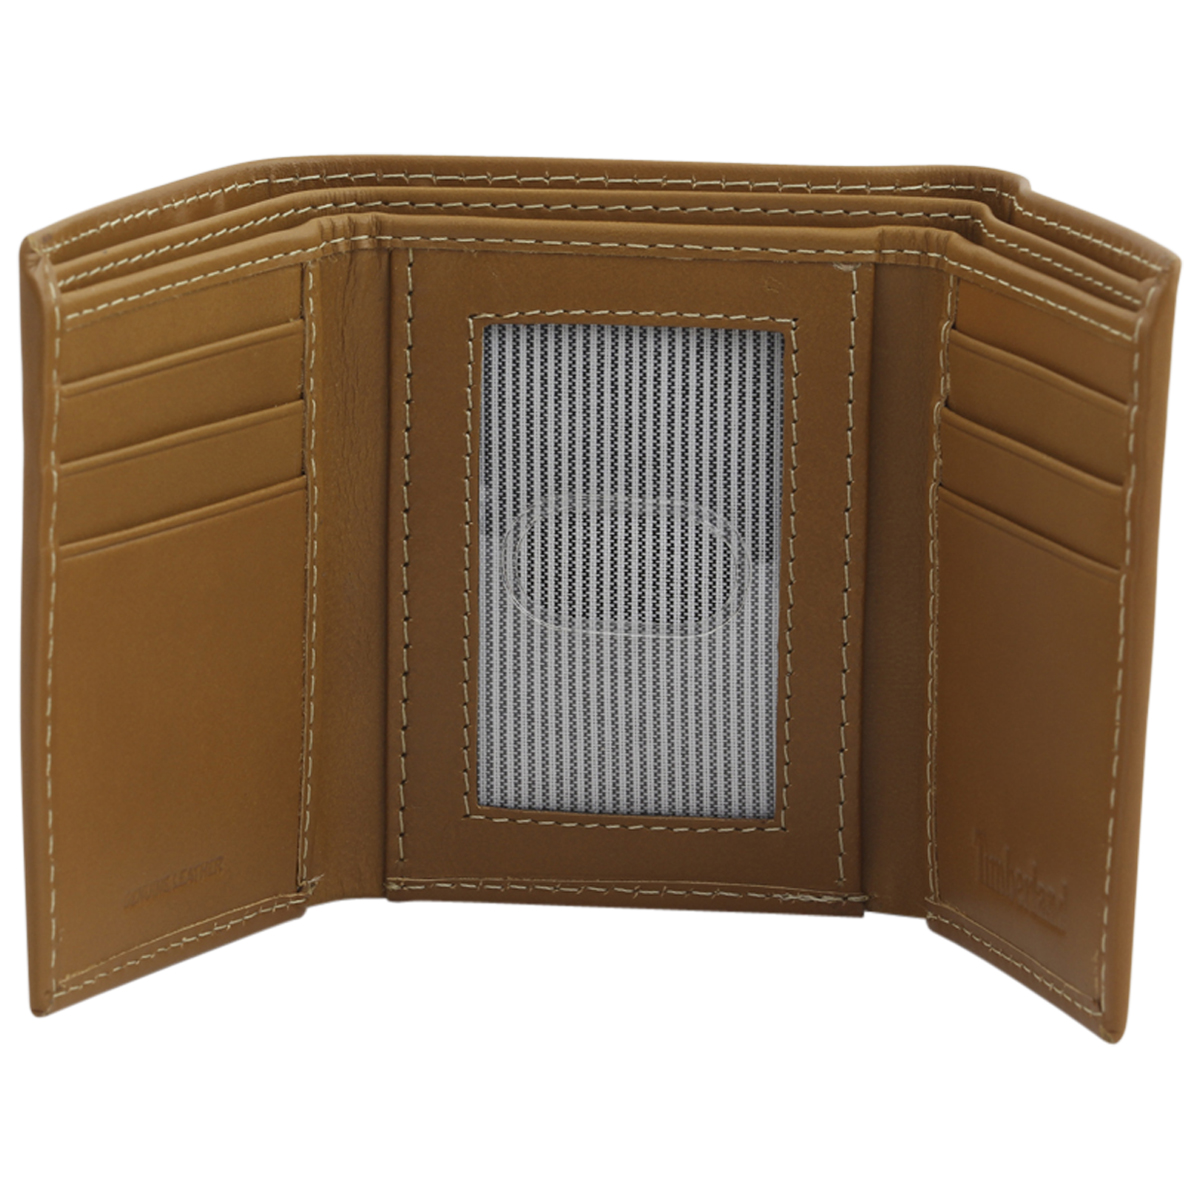 Timberland-Men-039-s-Cloudy-Genuine-Leather-Tri-Fold-Wallet thumbnail 9